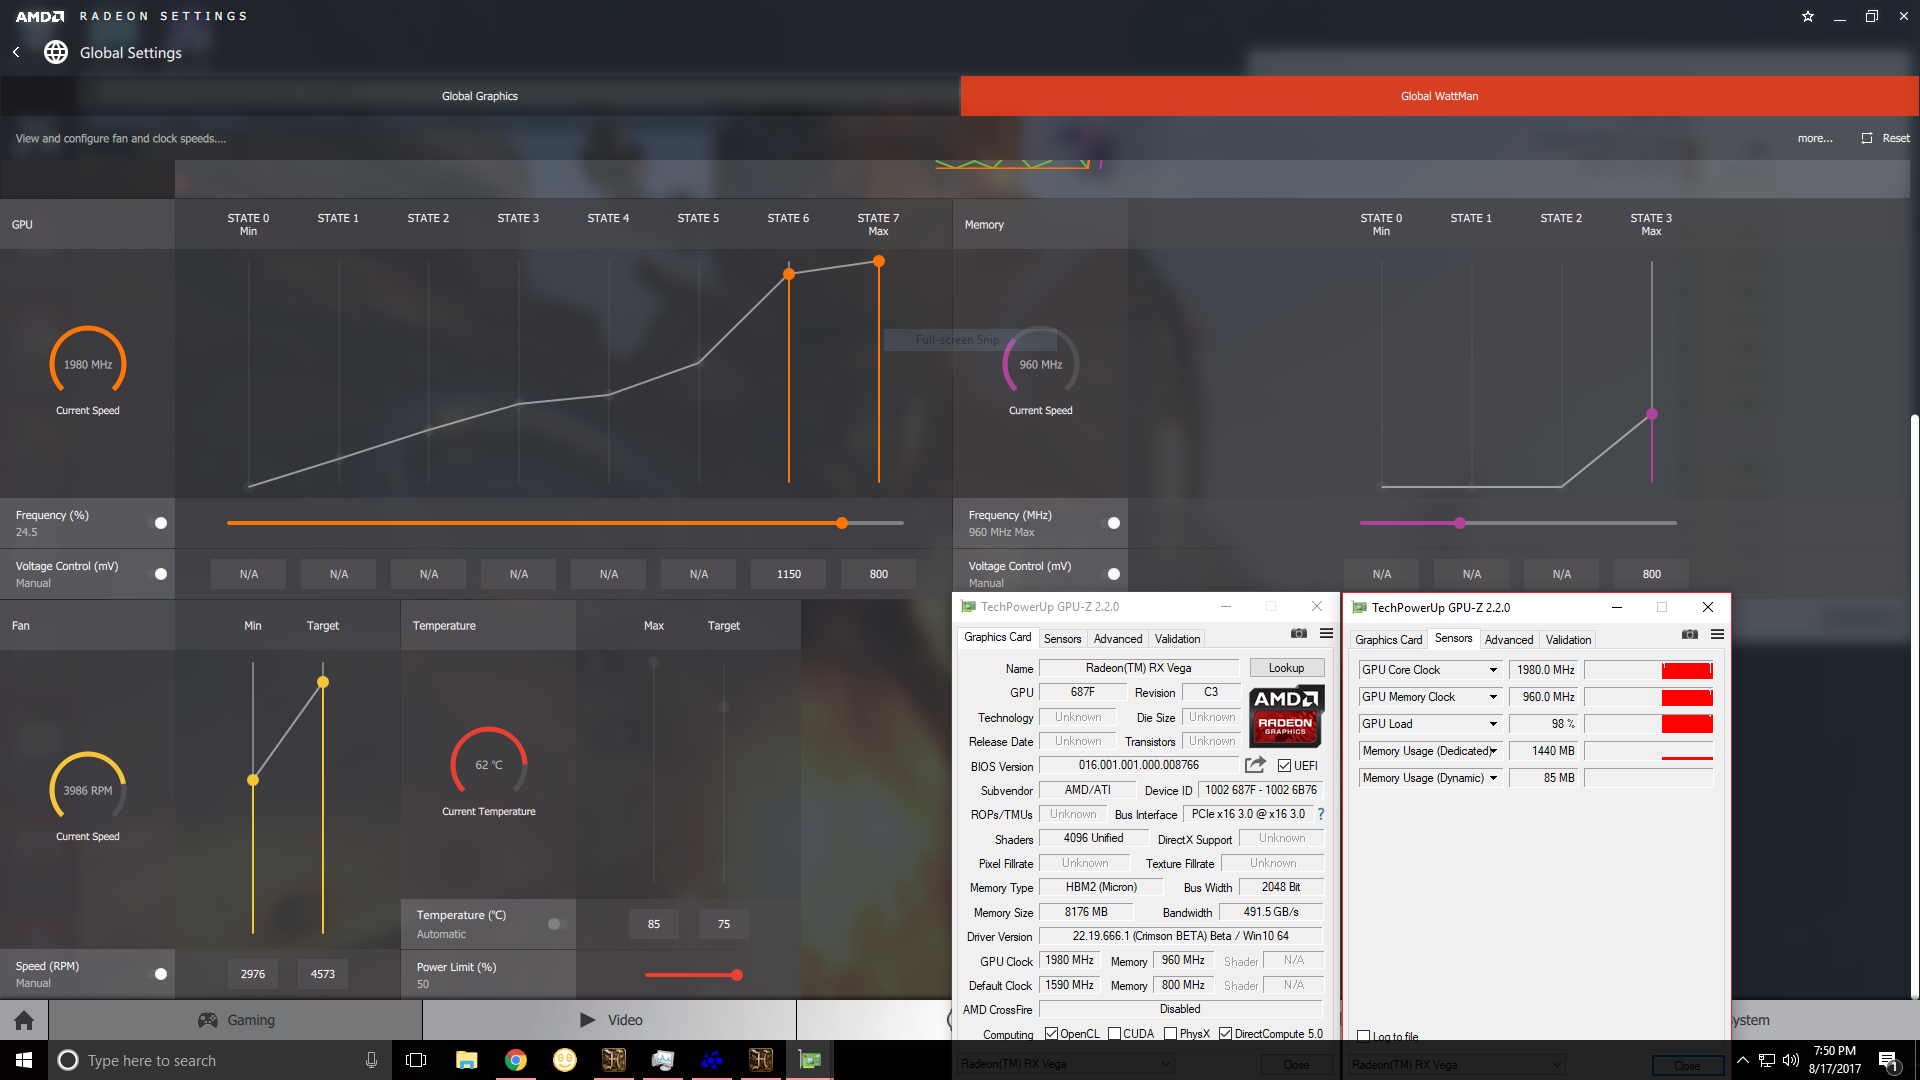 Preliminary view of AMD VEGA Bios - Page 20 - Overclock net - An